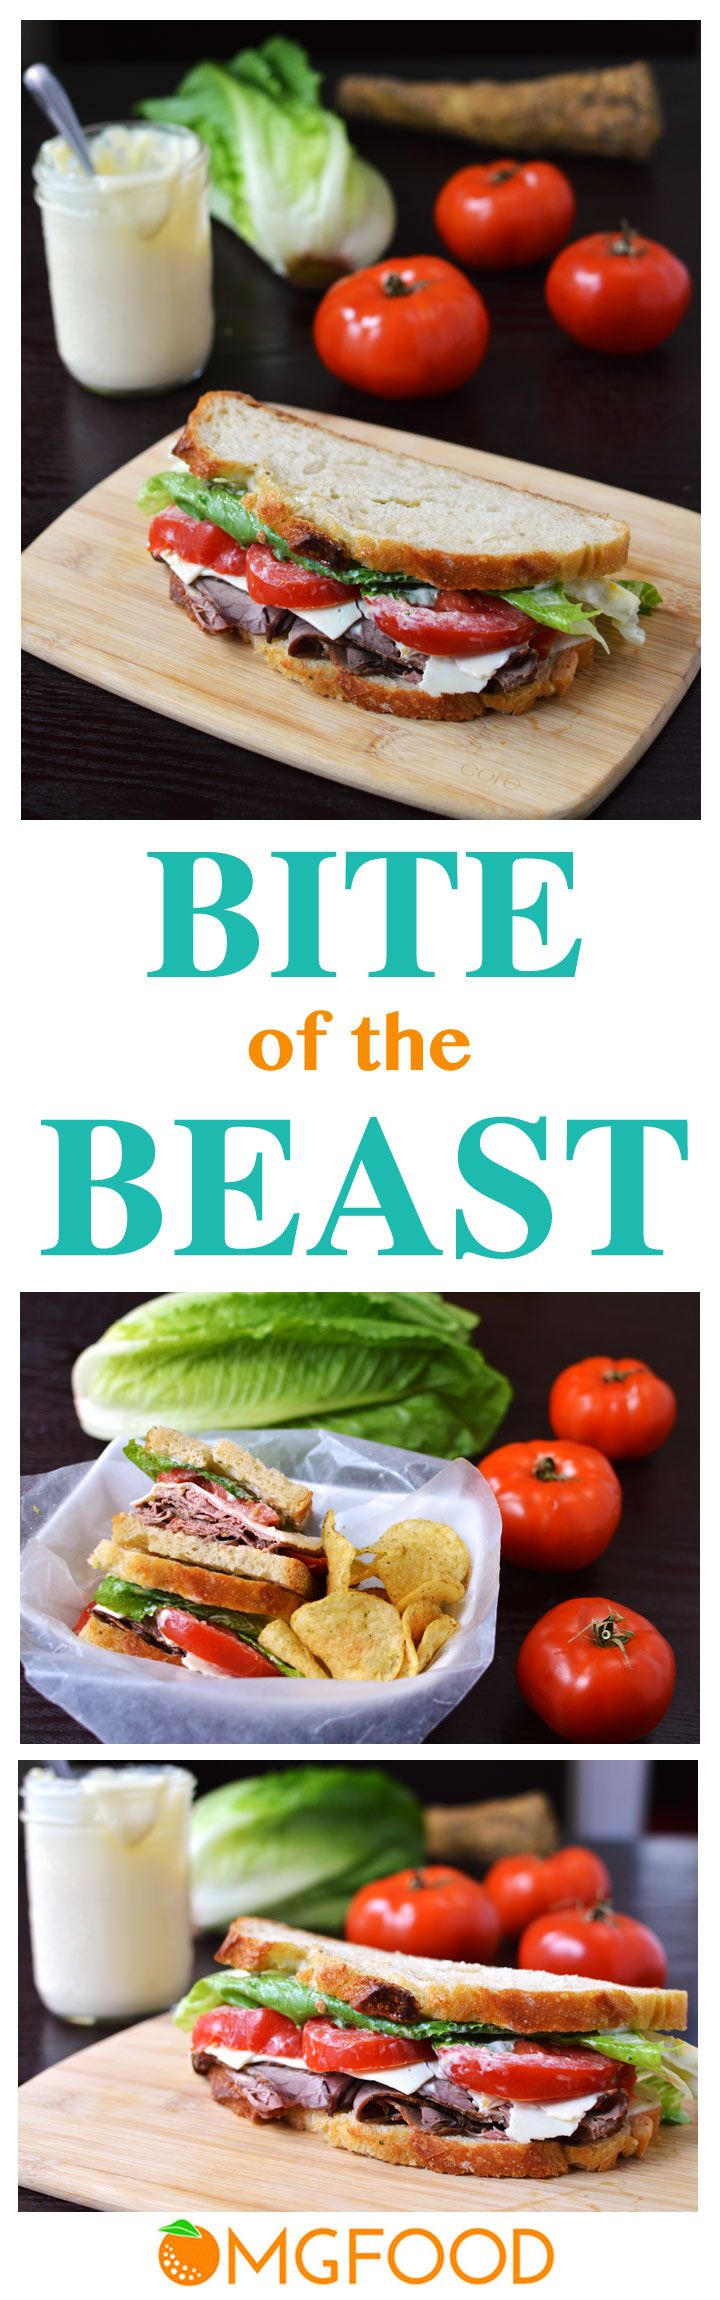 """Bite of the Beast (Roast Beef and Cheddar Sandwich) - The combination of roast beef, sharp cheddar, tomato, and creamy horseradish is what makes up the name """"Bite of the Beast!"""" A great sandwich for lunch (or even dinner). 